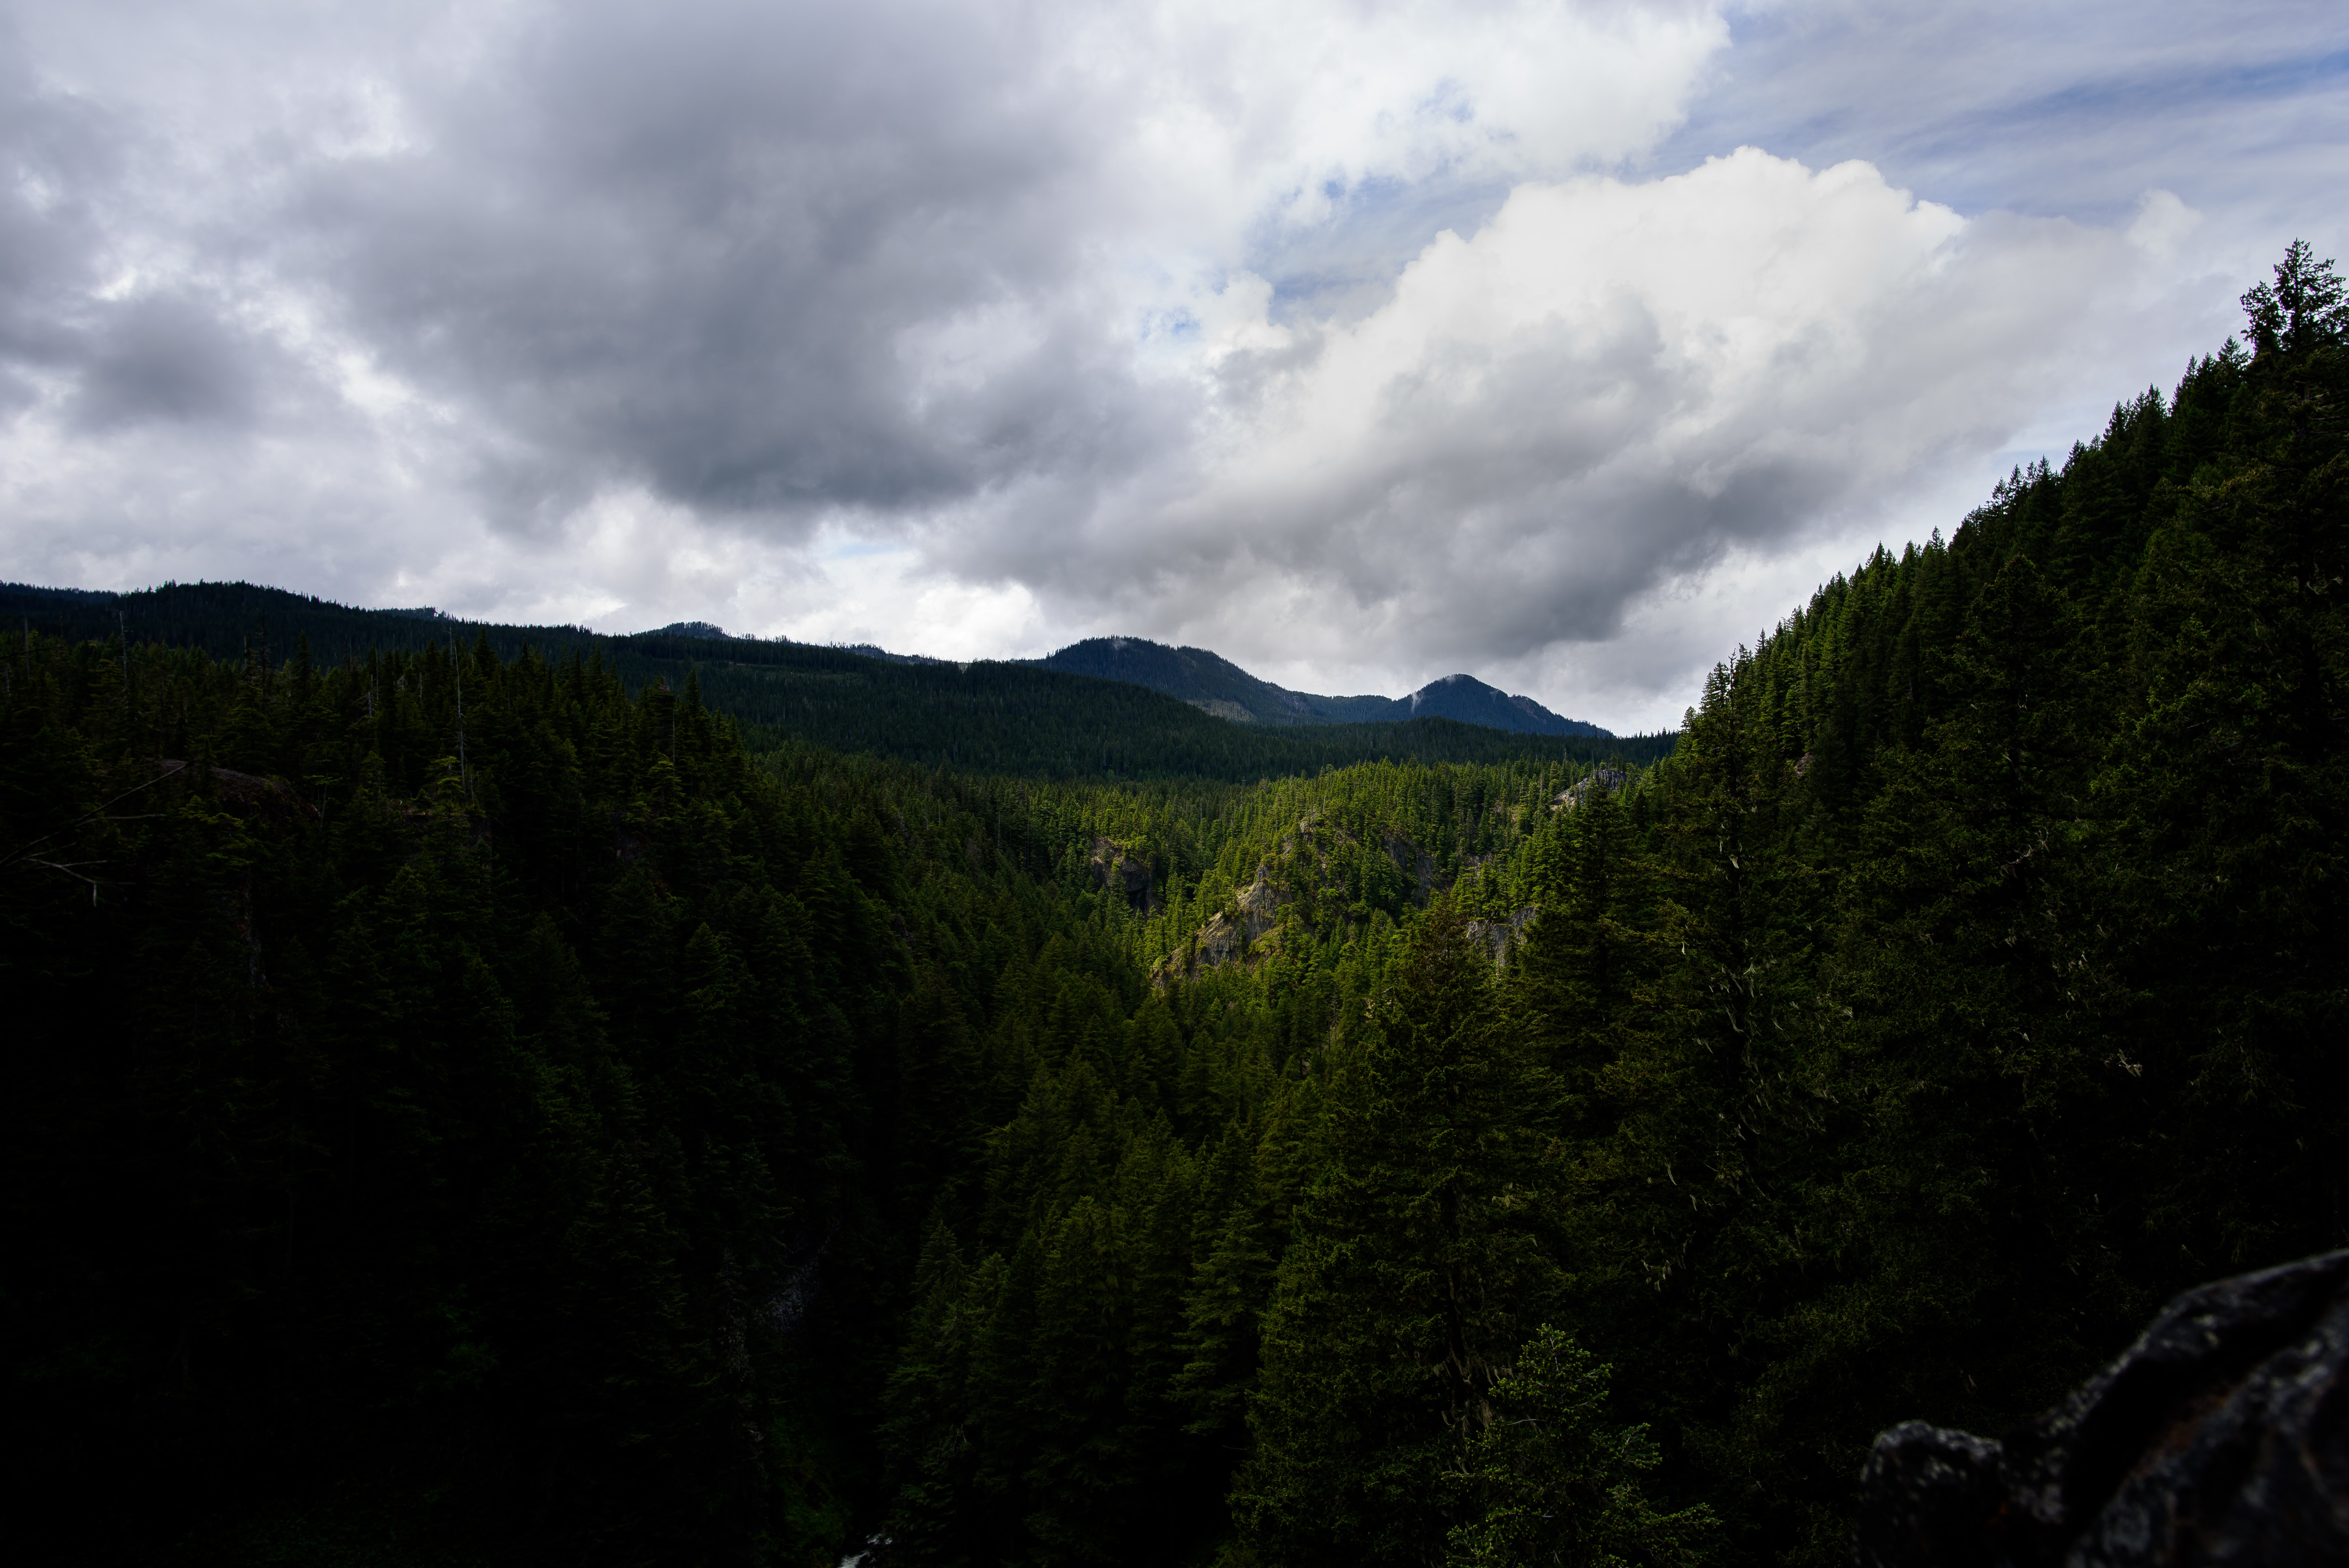 A wooded valley with mountains on the horizon on a cloudy day